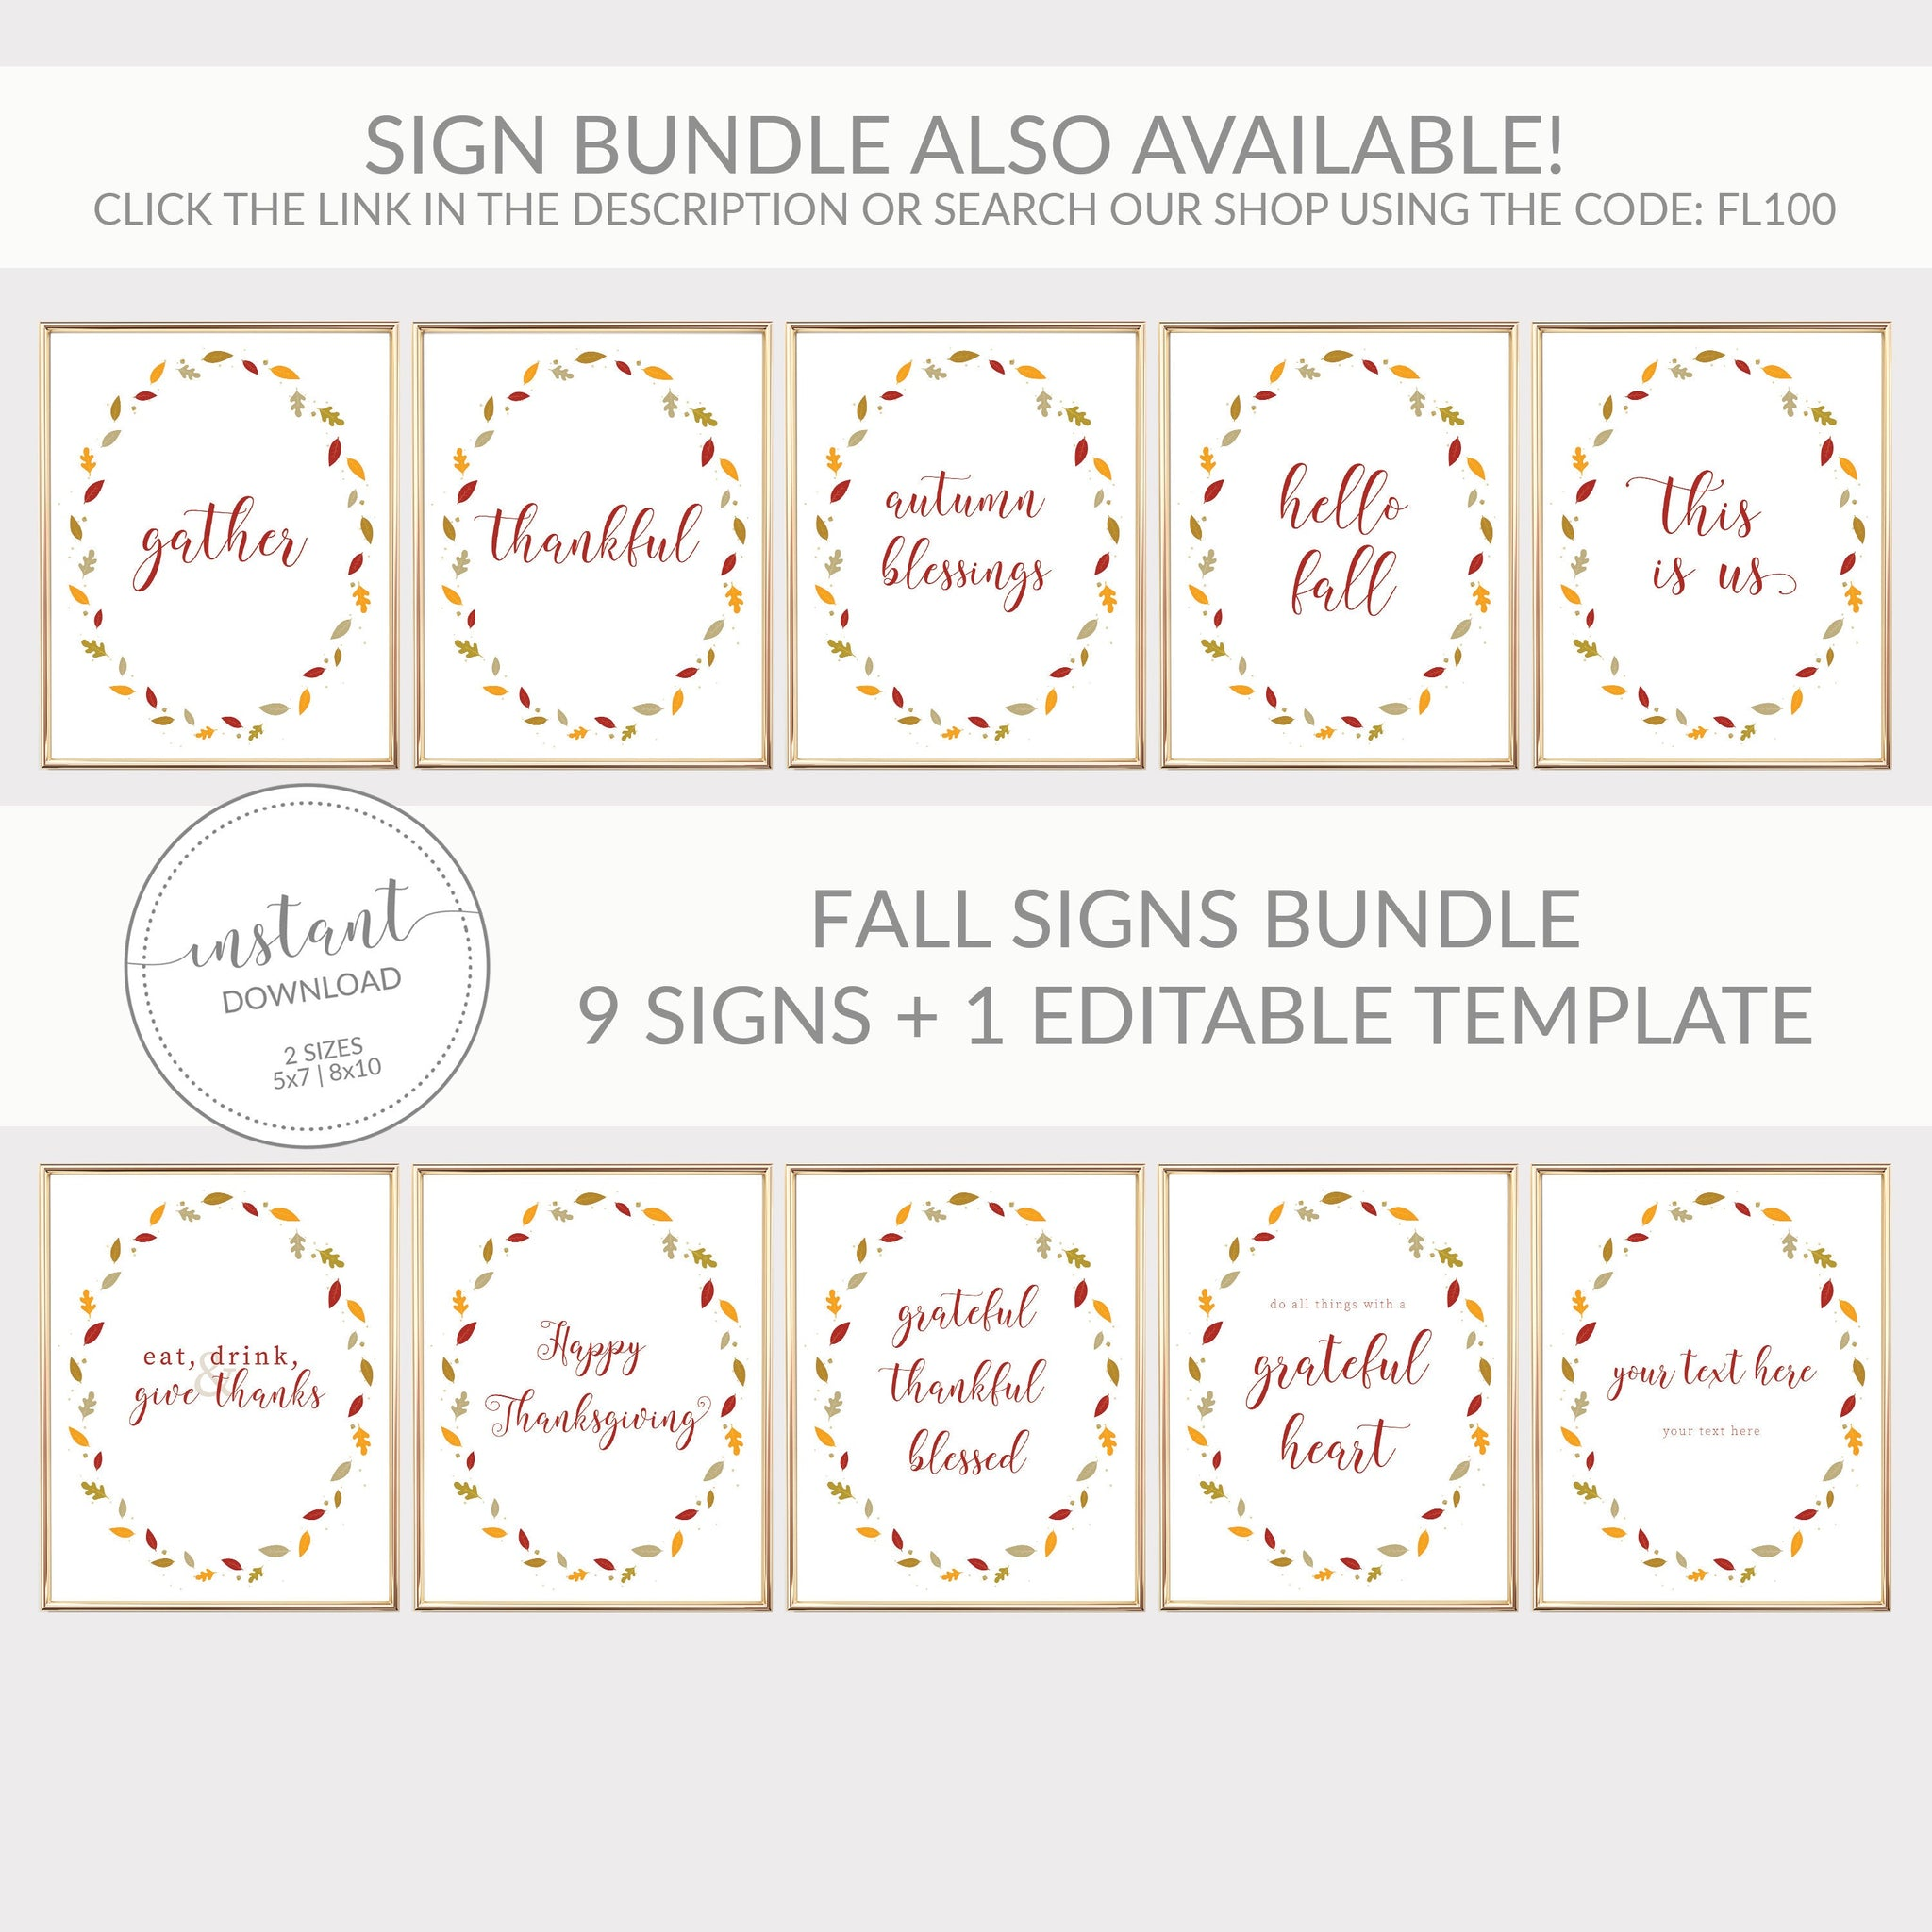 Autumn Blessings Sign, Thanksgiving Decorations, Fall Decor Leaves, Printable Fall Decor for Mantle, INSTANT DOWNLOAD - FL100 - @PlumPolkaDot